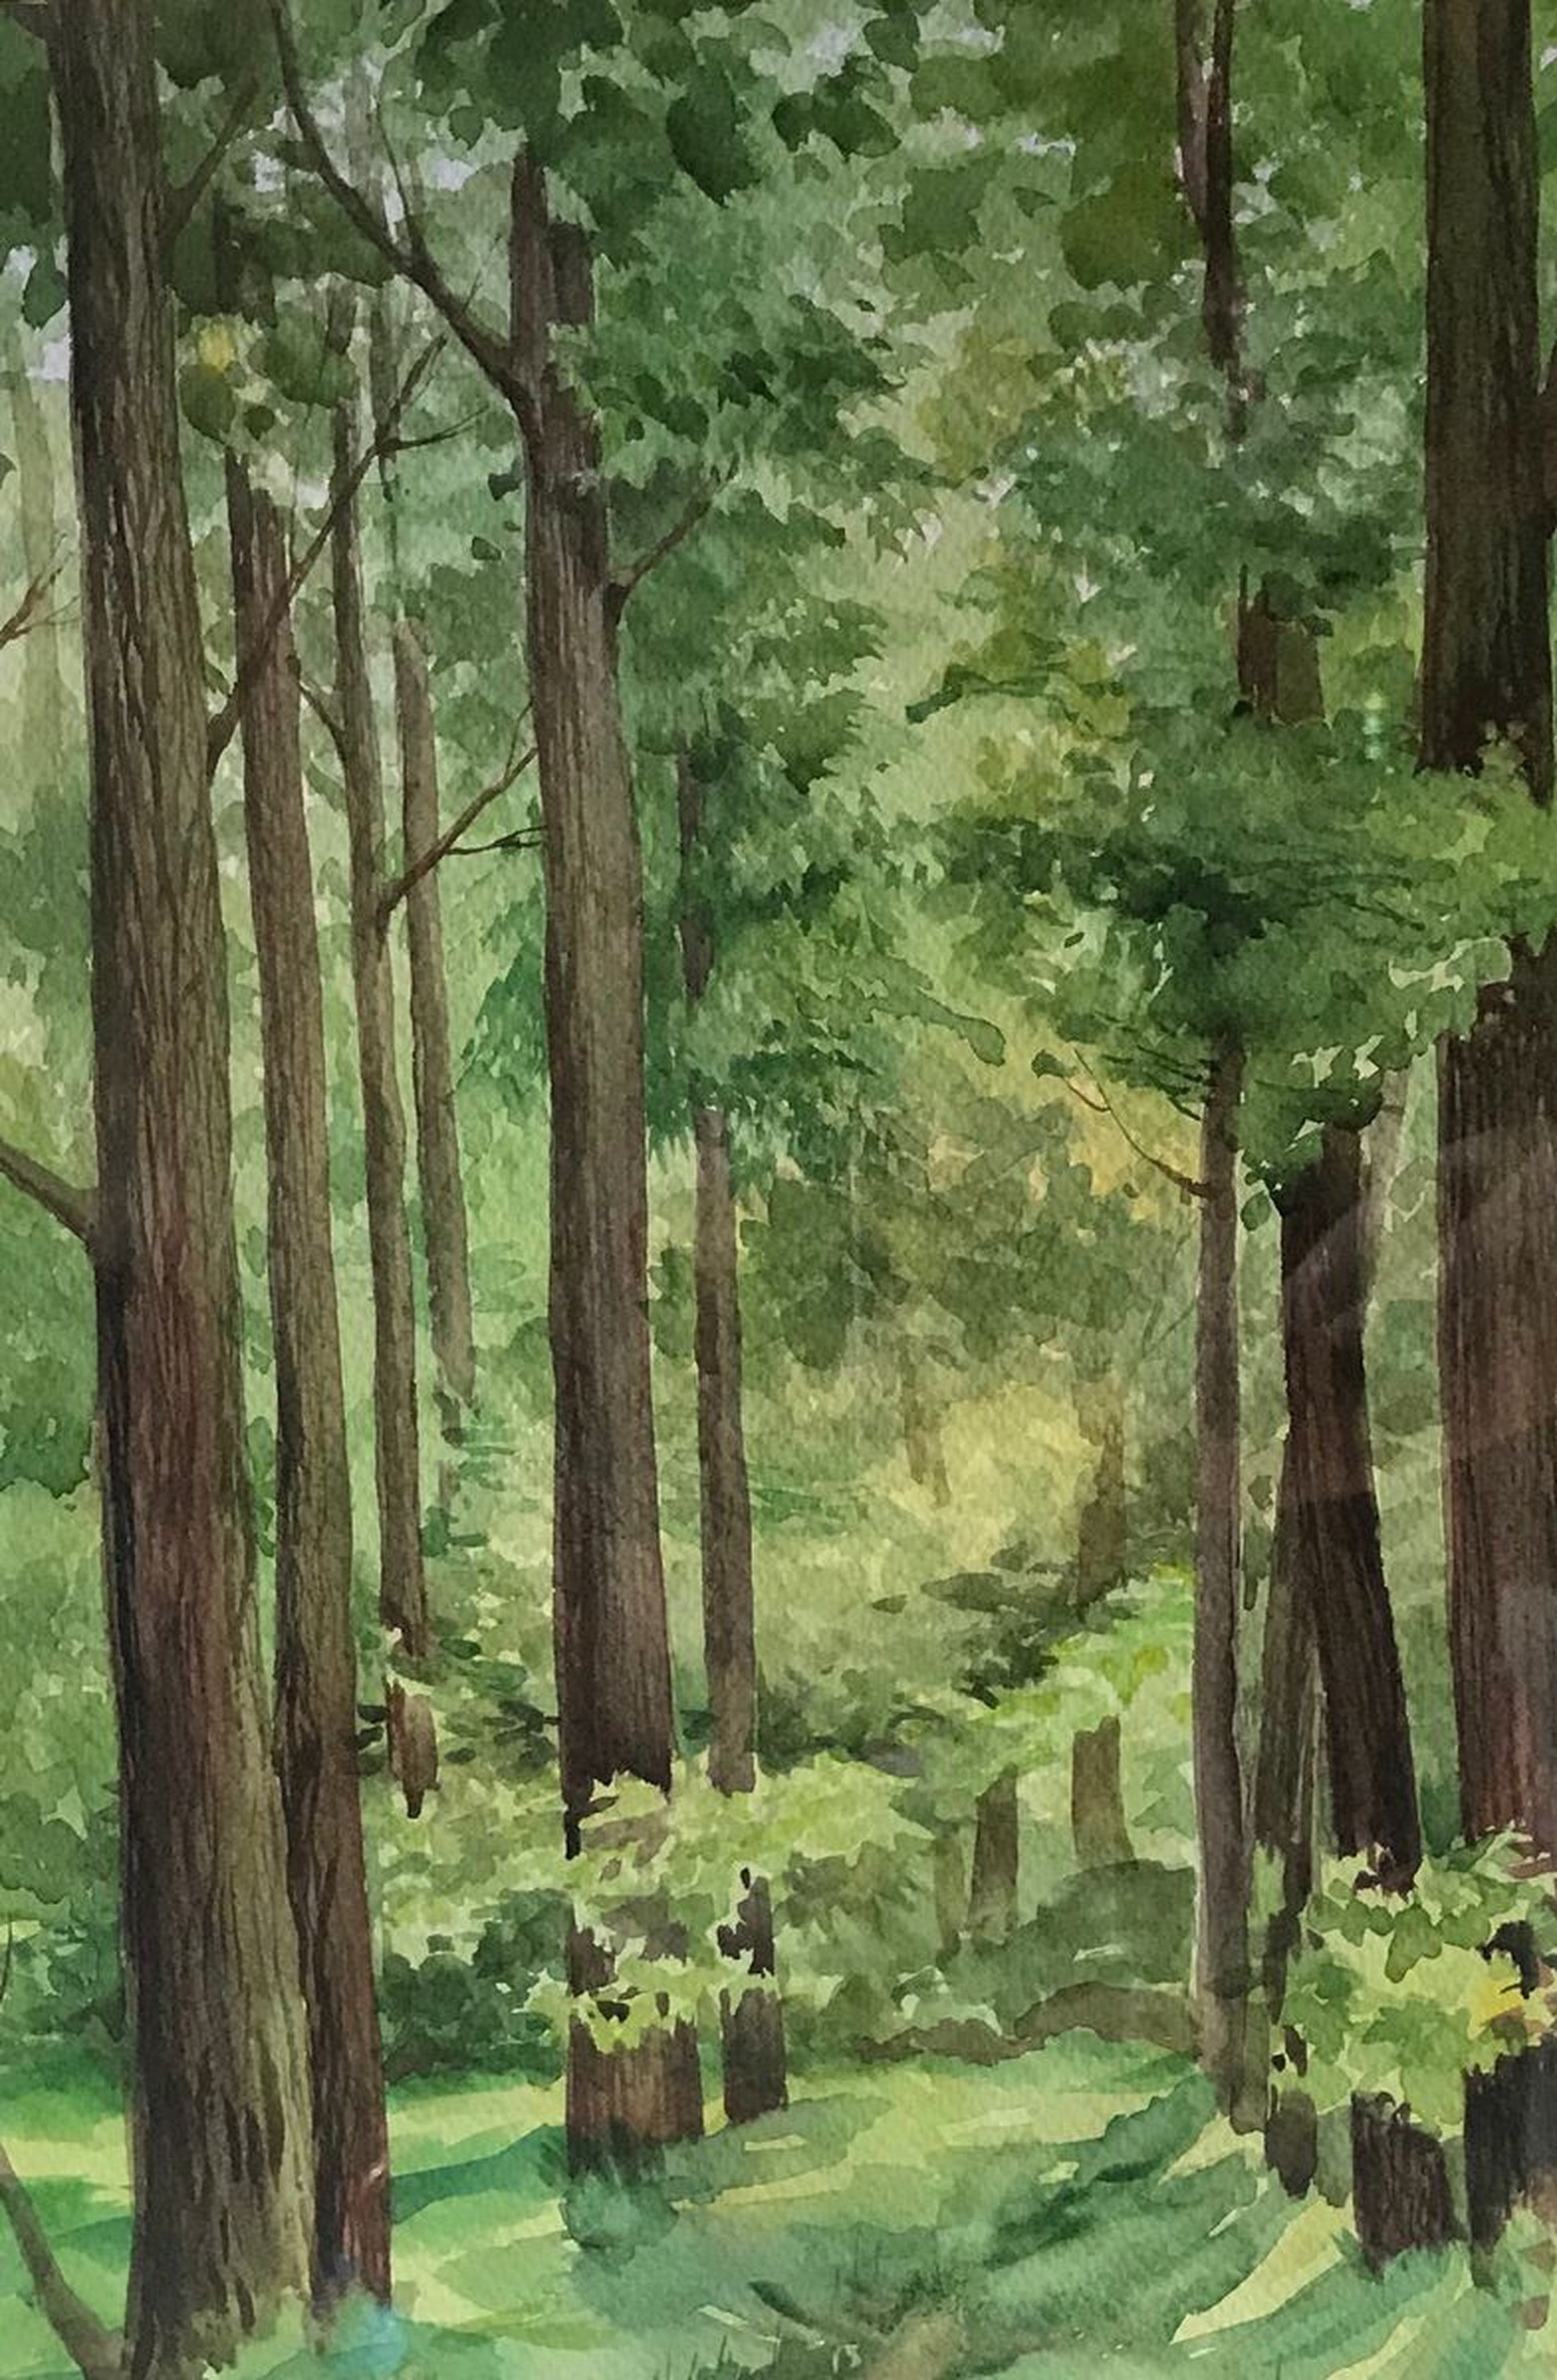 watercolor landscape summer forest artfinder watercolor landscape summer forest